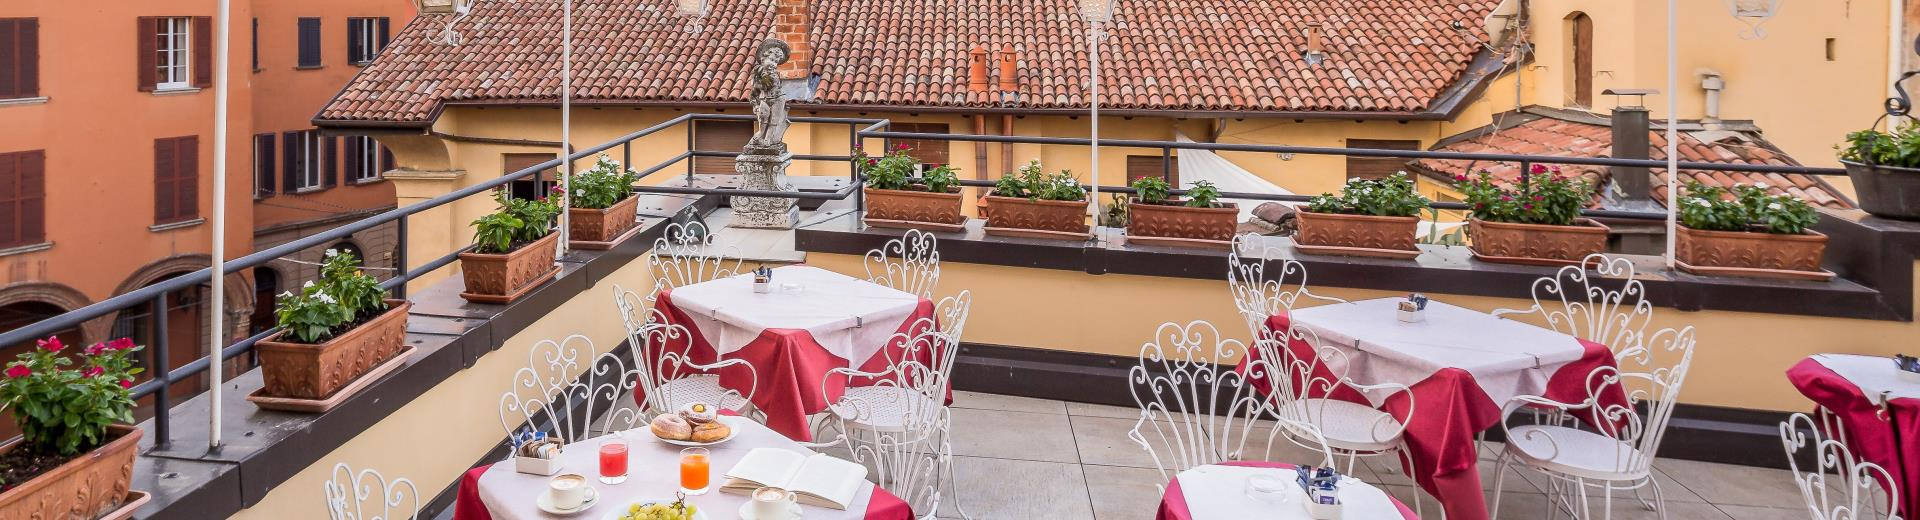 The terraces of the BW Hotel San Donato 4-star in the center of Bologna